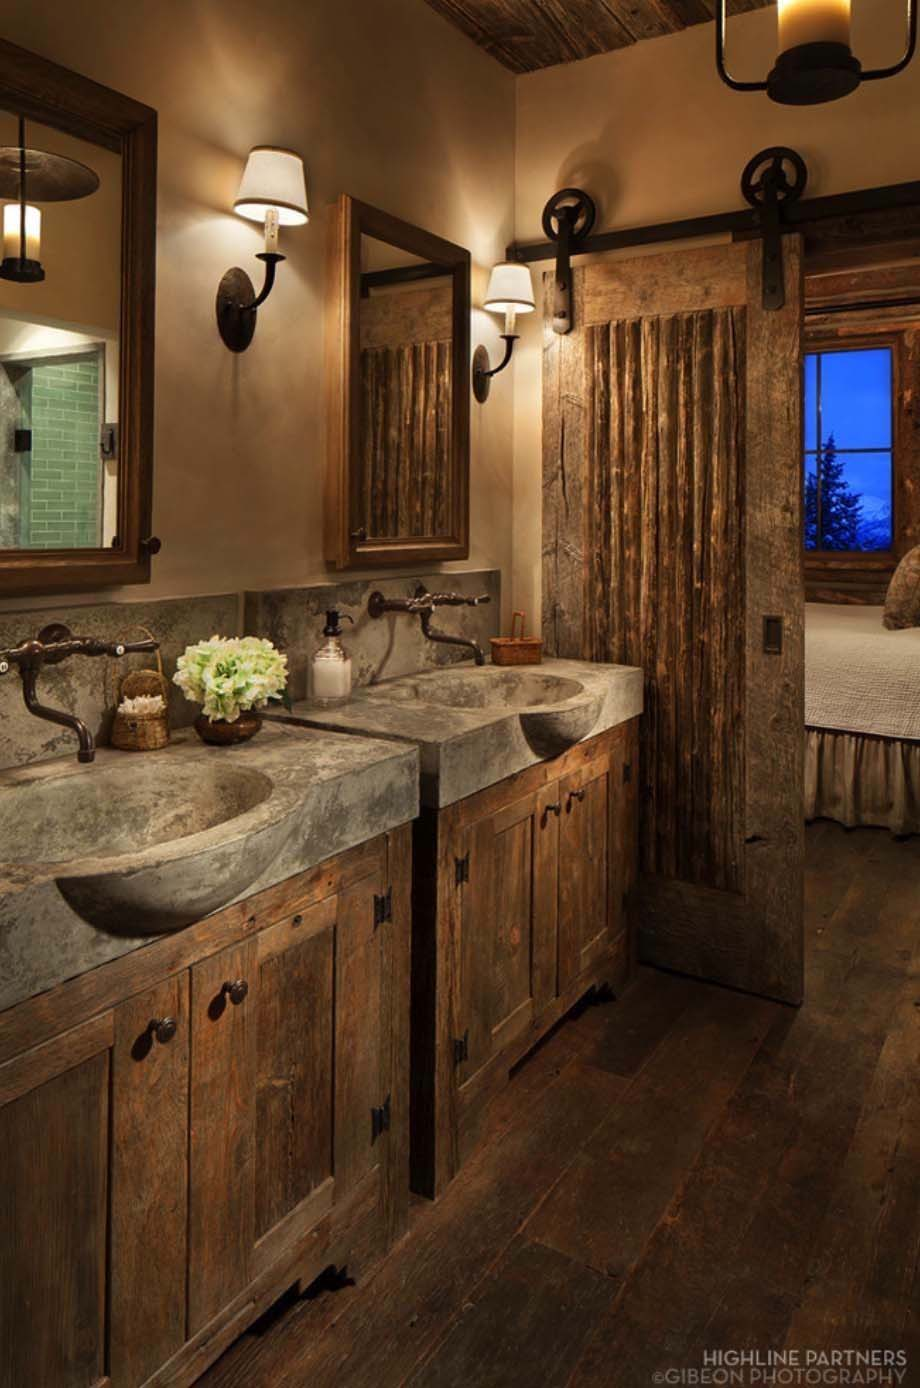 17 inspiring rustic bathroom decor ideas for cozy home Bathroom decor ideas